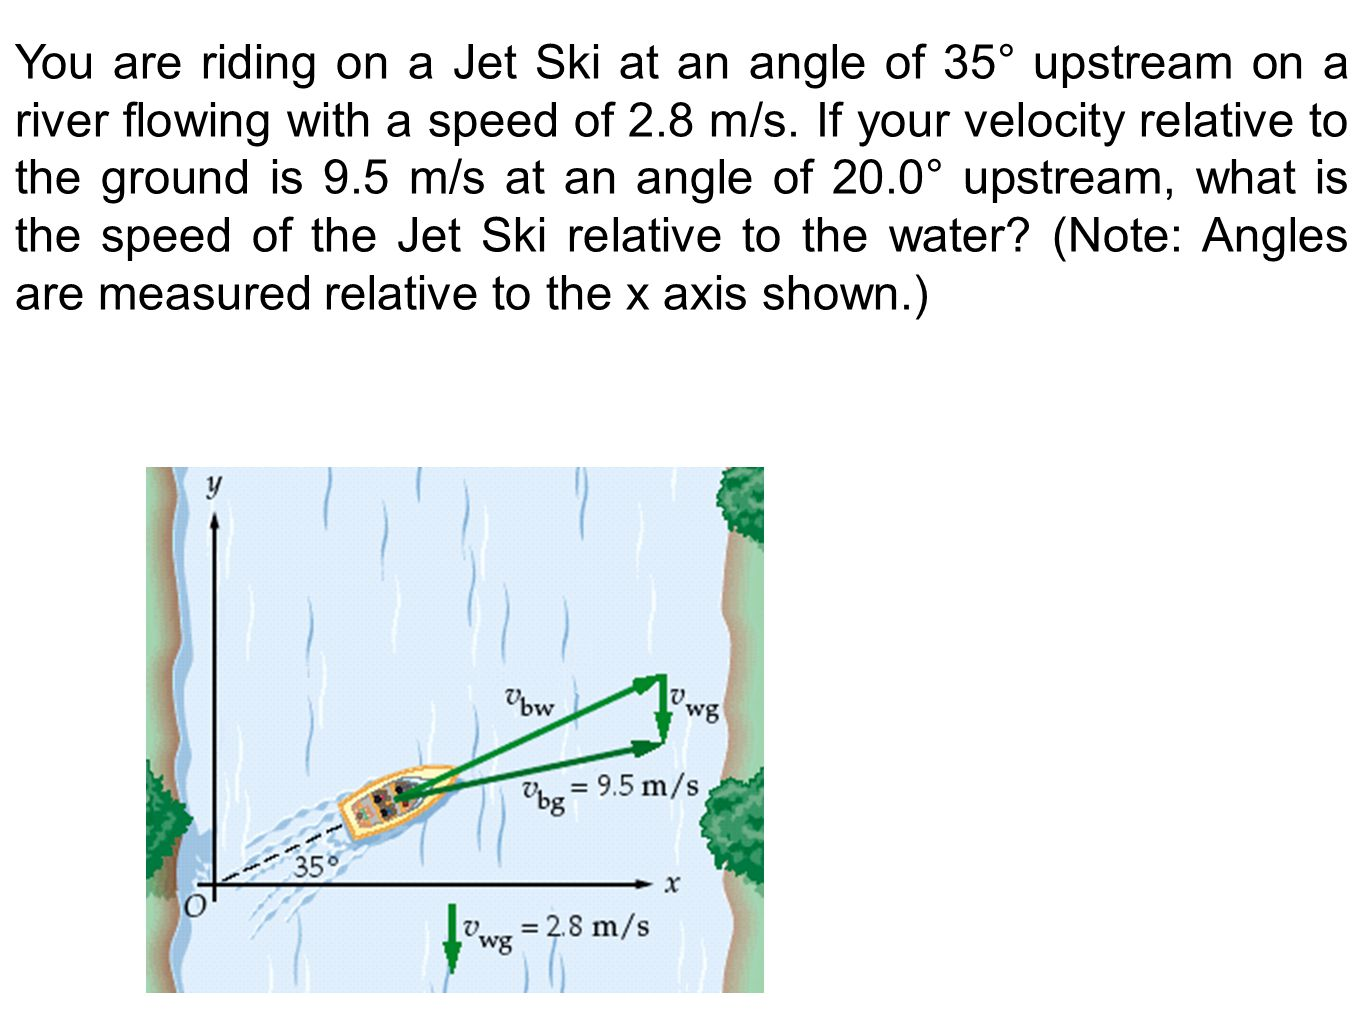 You are riding on a Jet Ski at an angle of 35° upstream on a river flowing with a speed of 2.8 m/s.